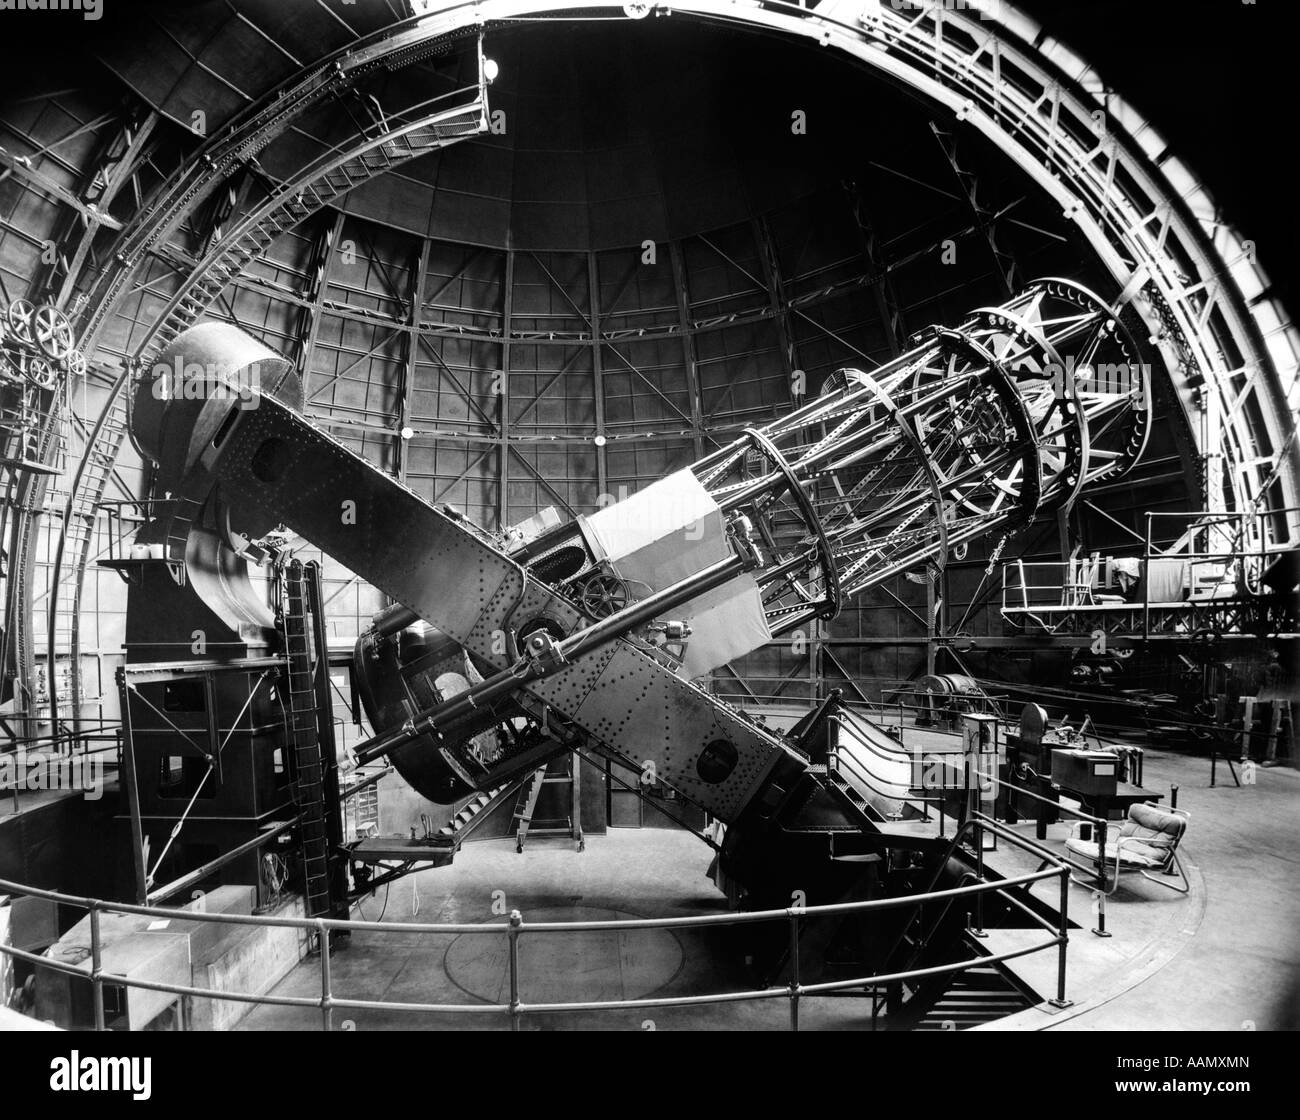 1960s SIDE VIEW OF 100-INCH HOOKER TELESCOPE IN OBSERVATORY - Stock Image